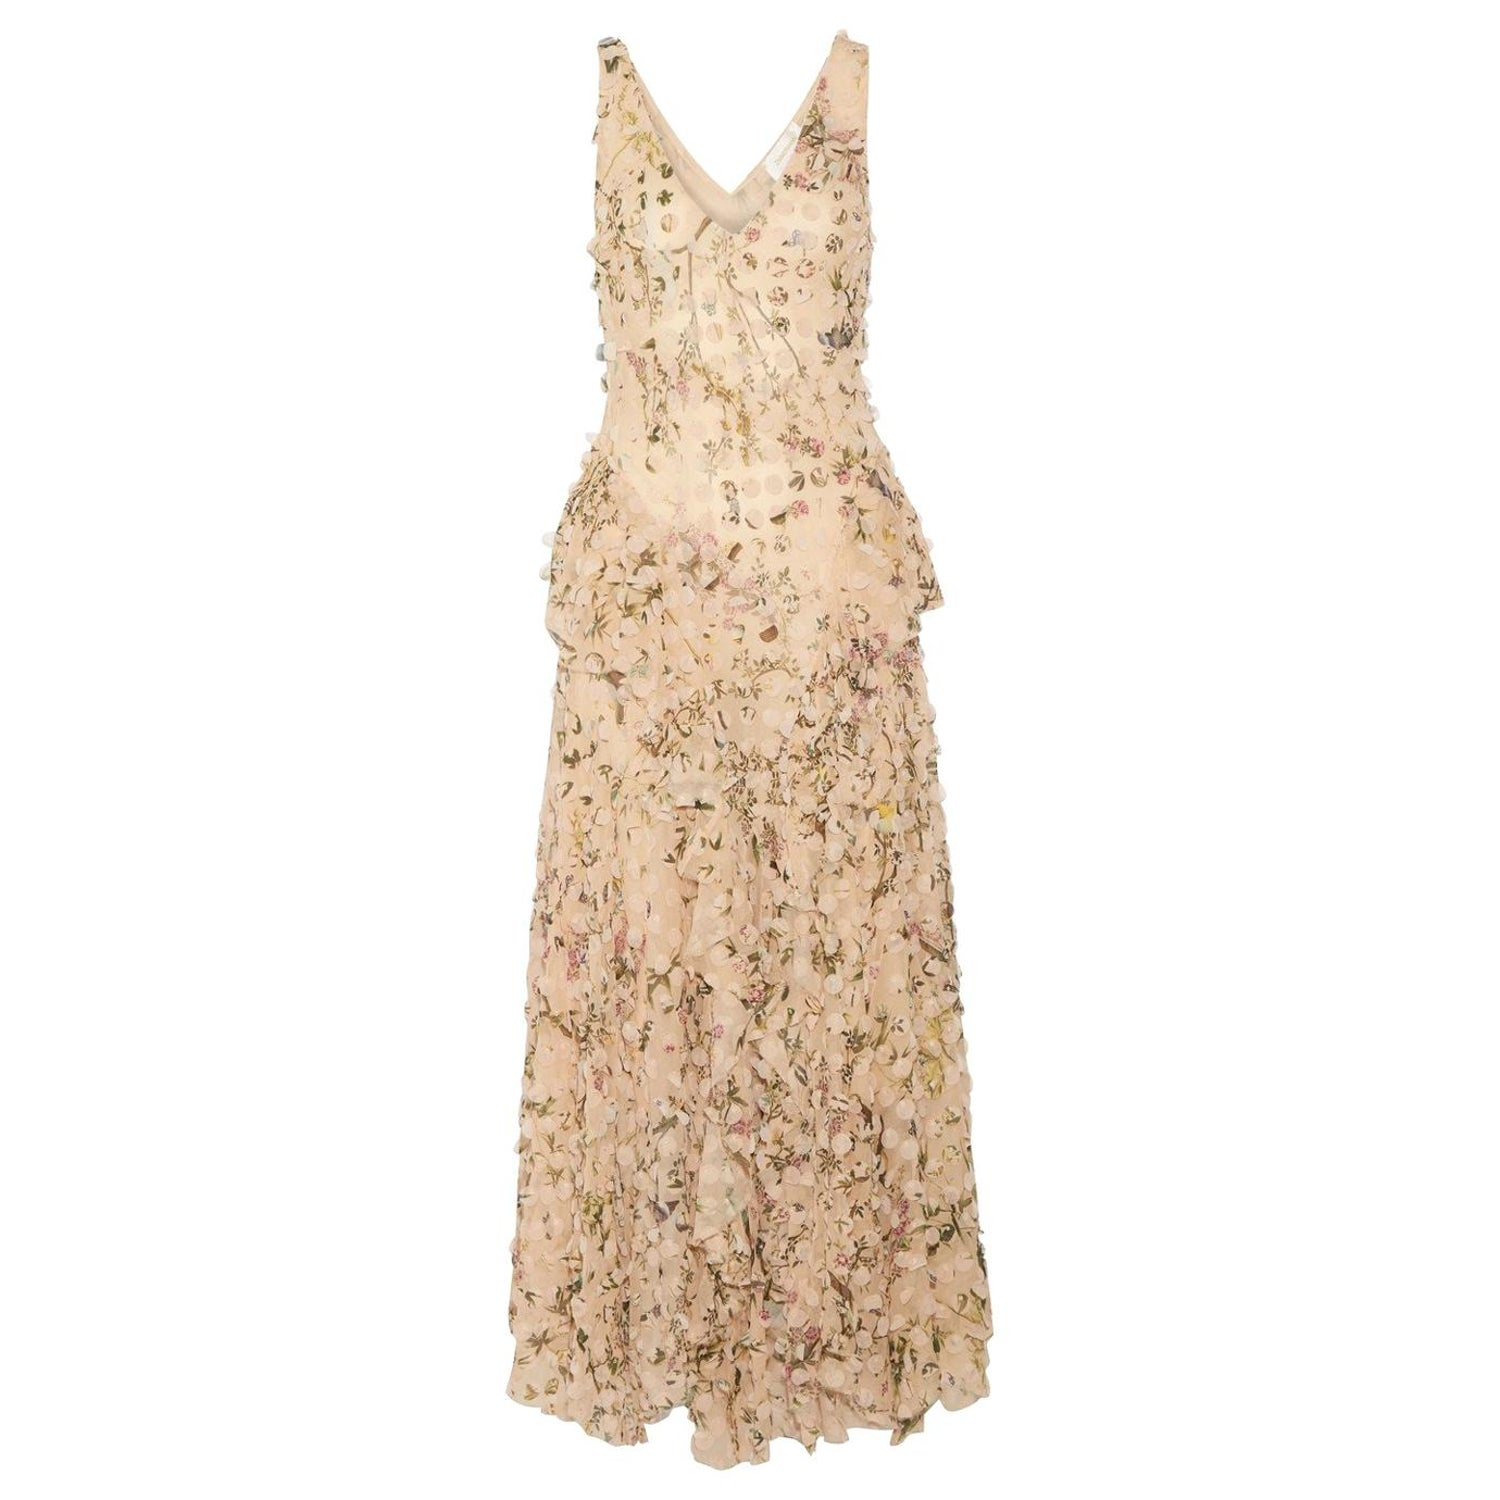 2f3a2bb73deb Zimmermann Maples Whisper Appliquéd Printed Silk Midi Dress at 1stdibs